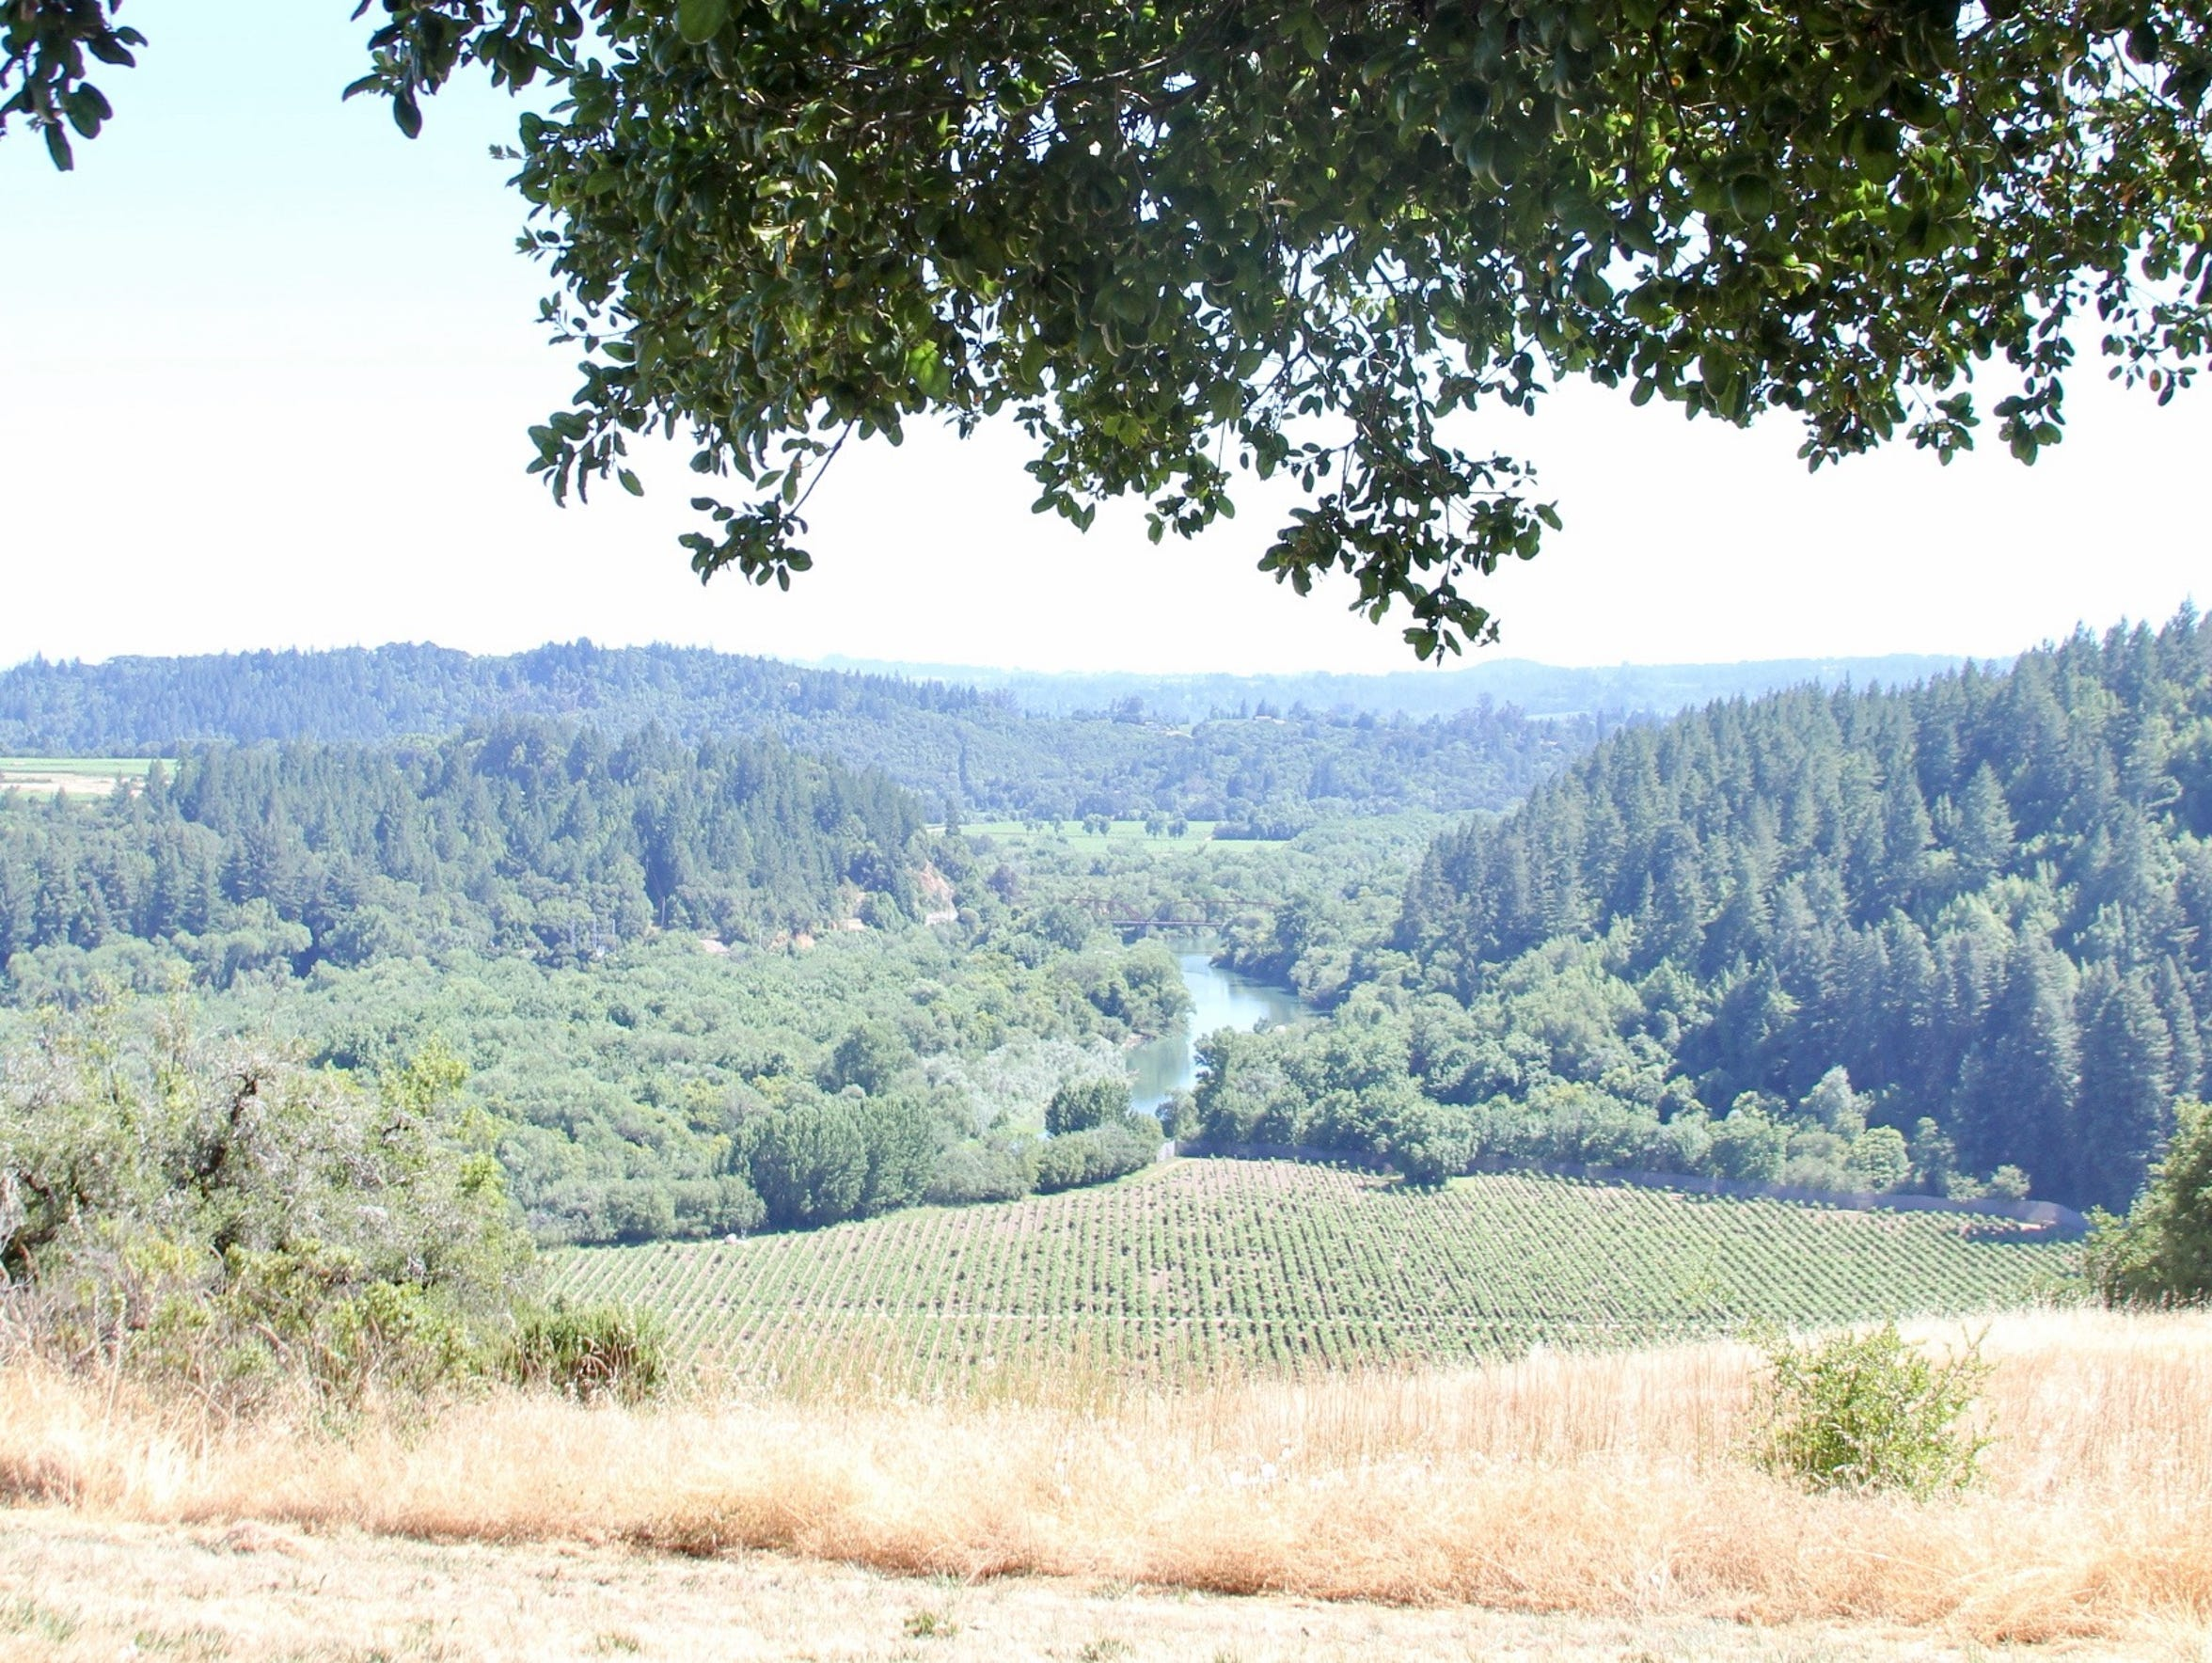 The Russian River dawdles in the distance, as seen